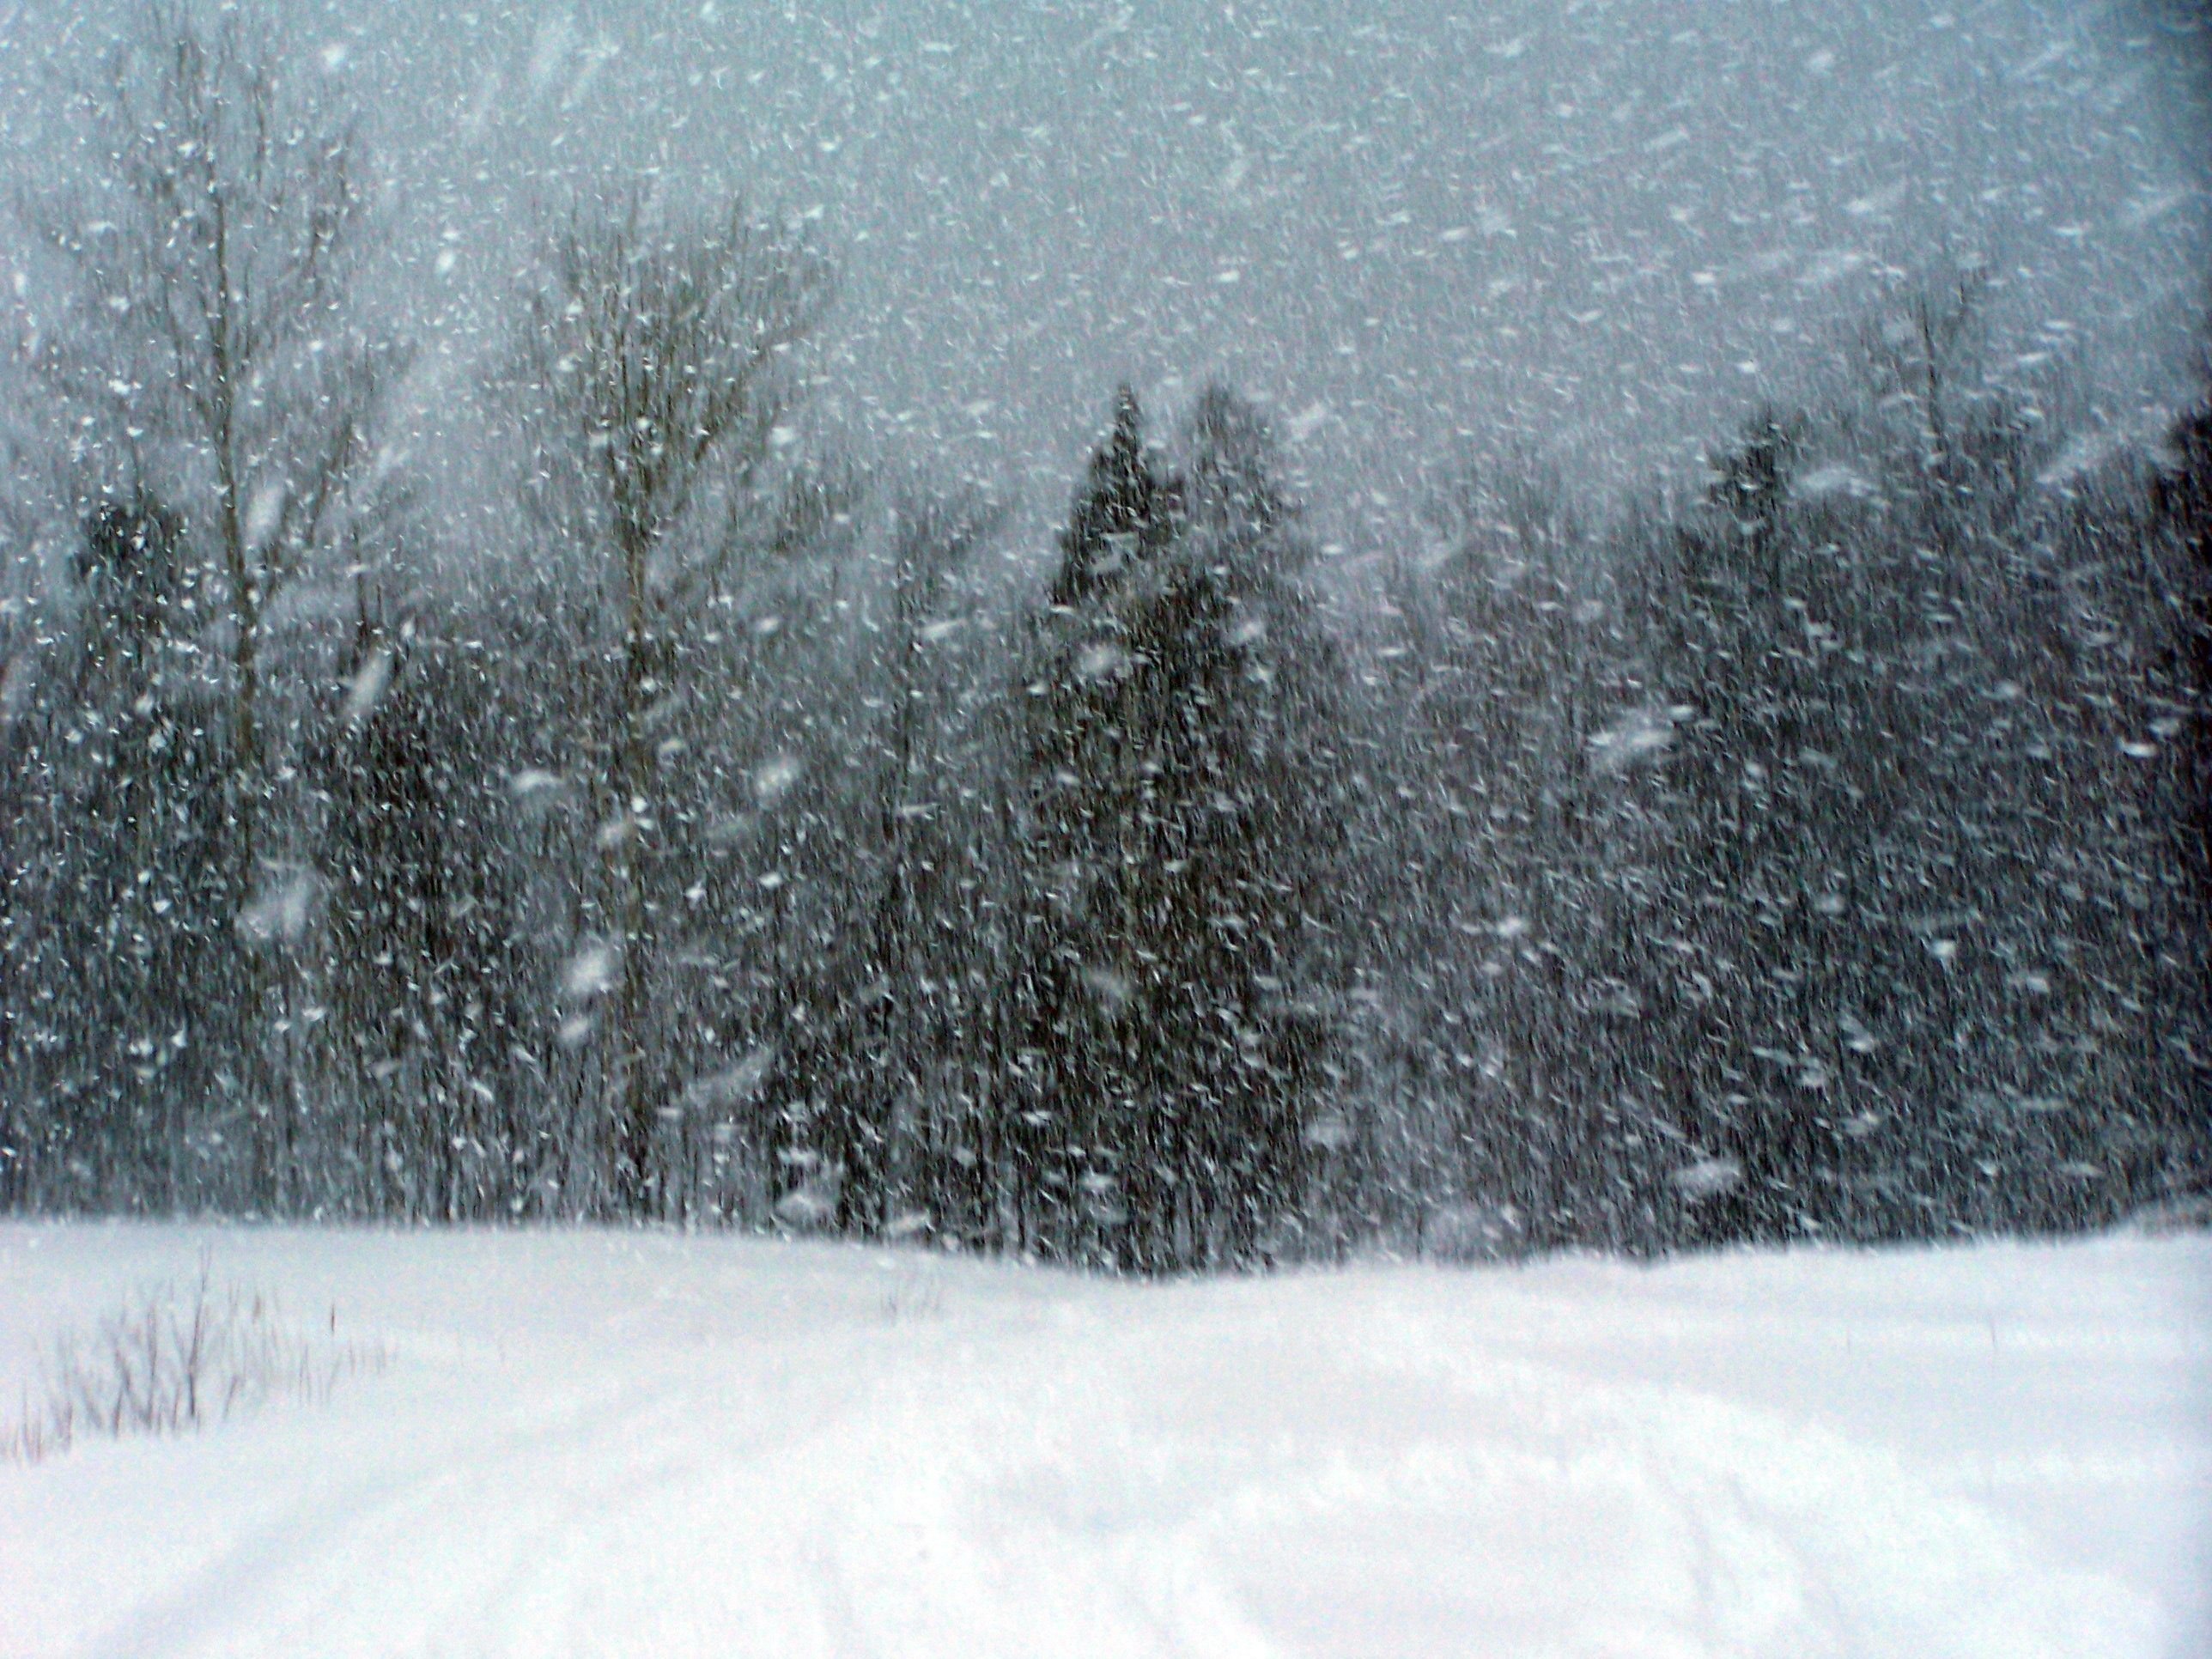 Snowstorm In A Glass | Winter poems, Snow storm, Painting snow